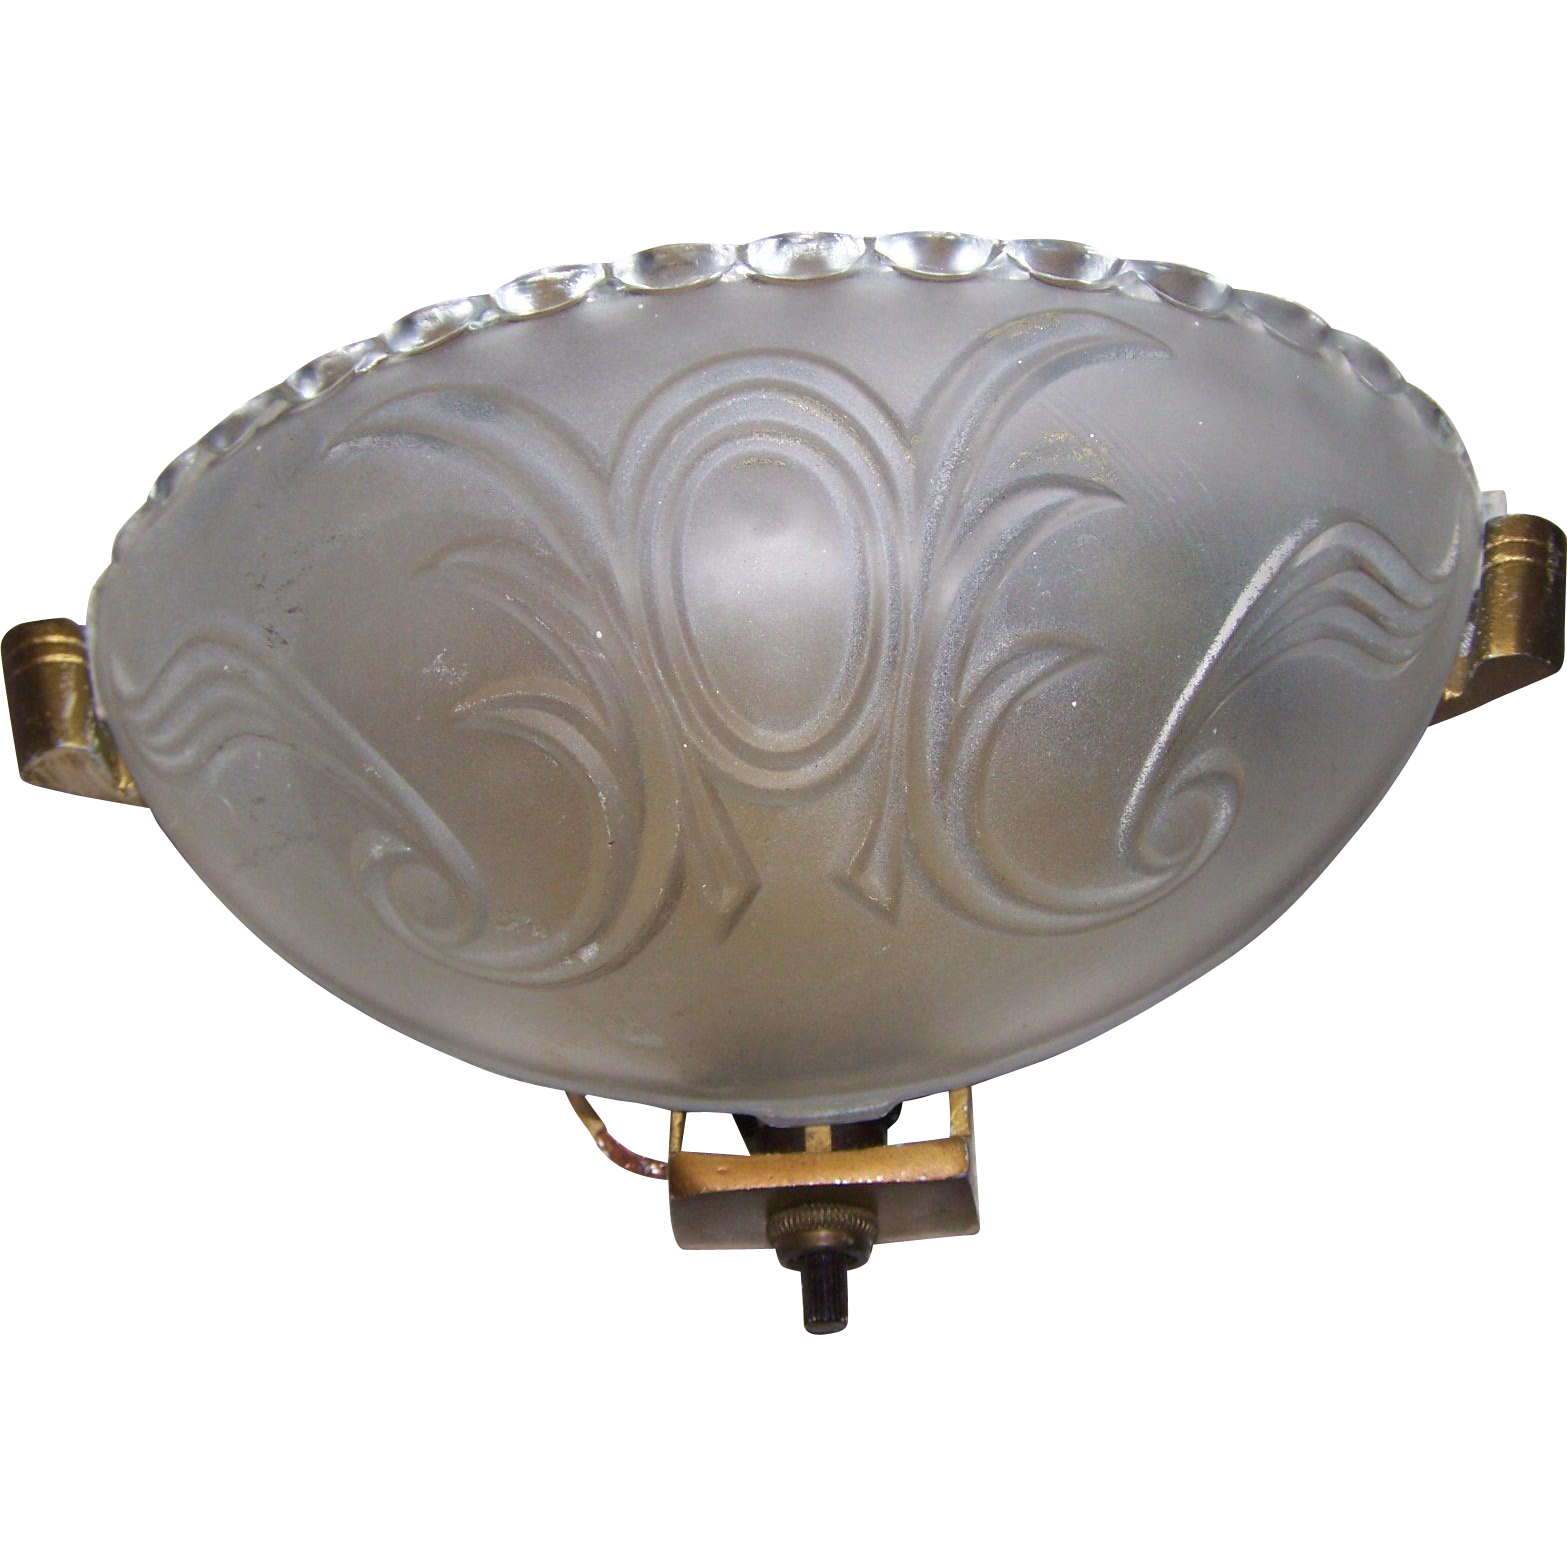 Deco Era Embossed Frosted Glass Slip Shade Wall Sconce Fixture Plus from victoriasjems on Ruby Lane